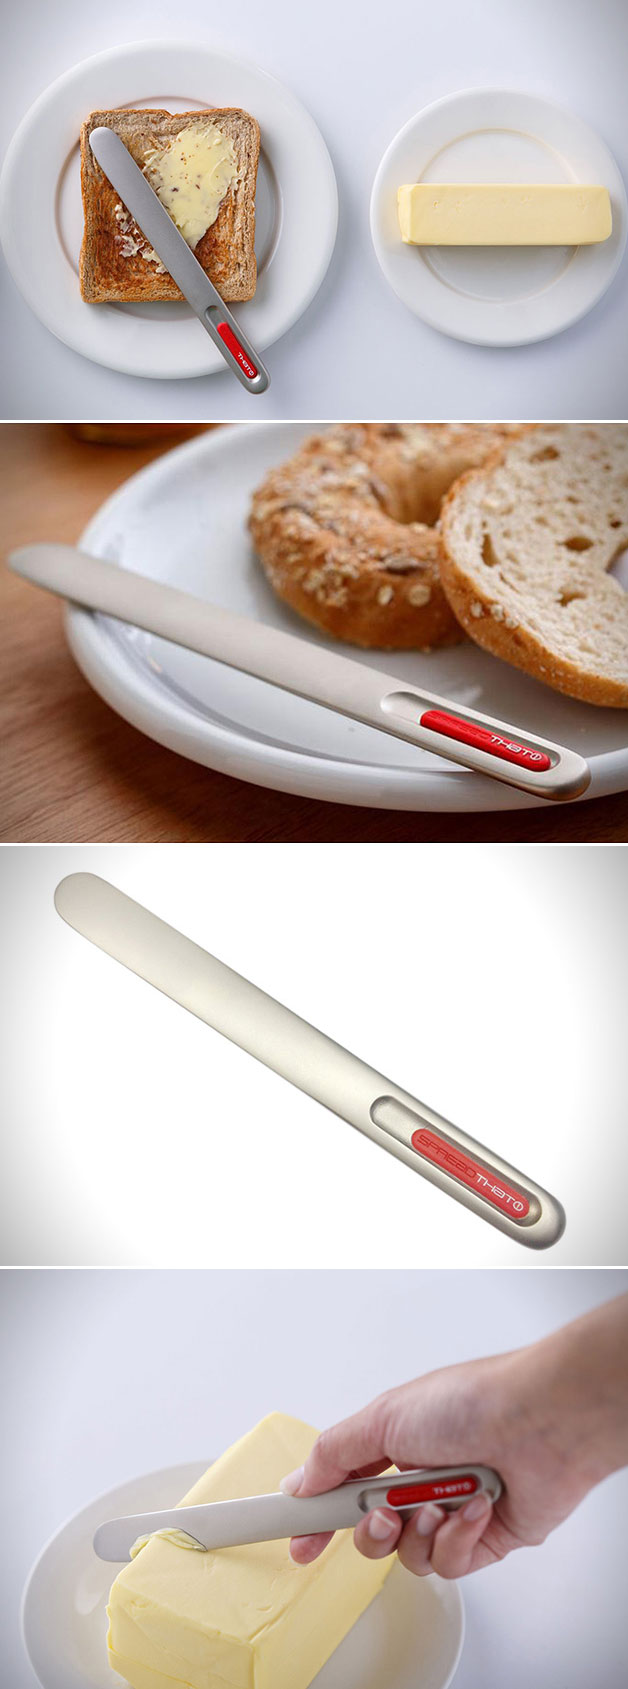 SpreadThat Body Heat Butter Knife